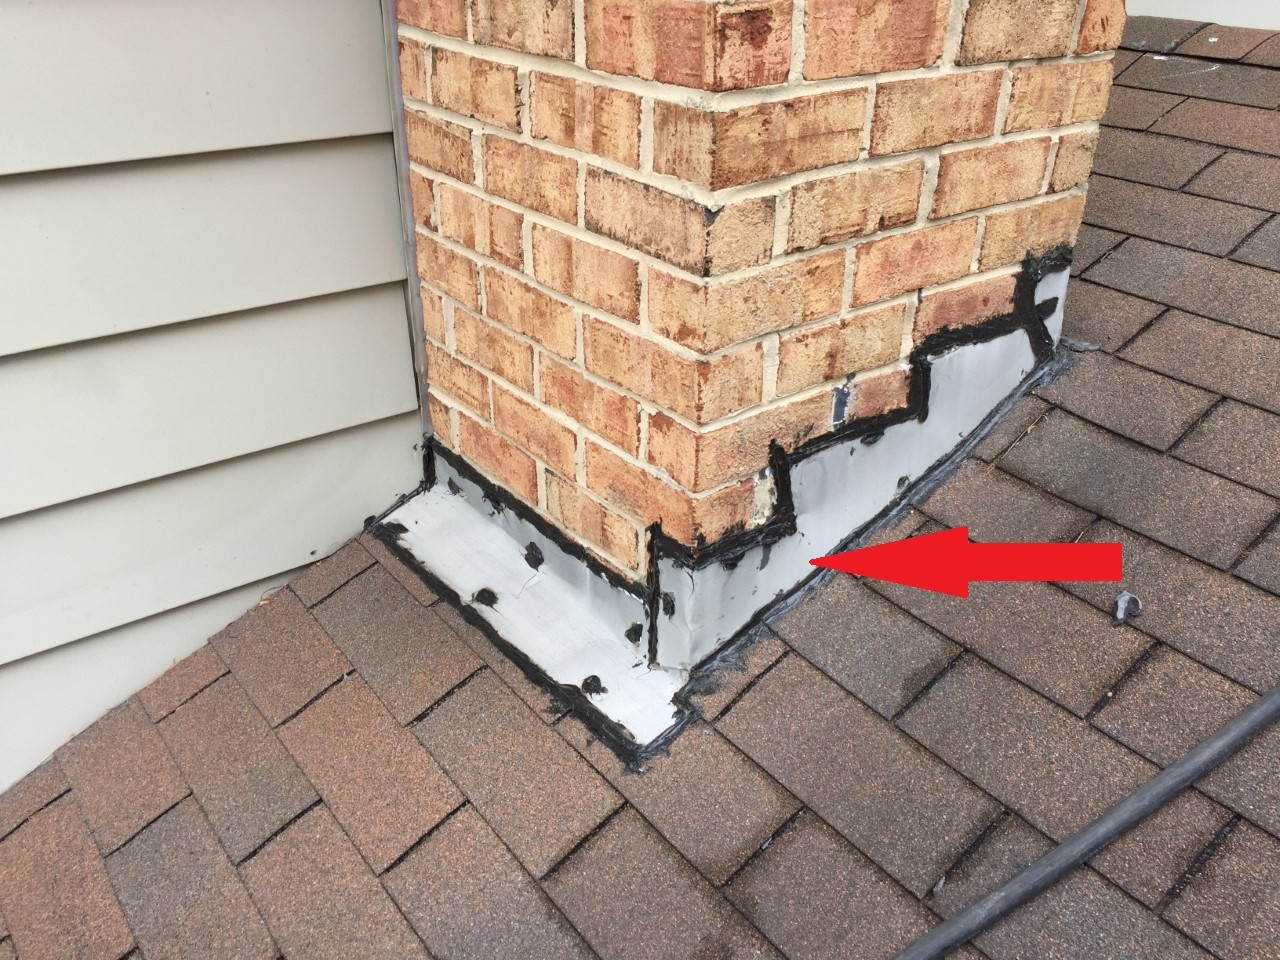 How to perform roofing inspections page 38 internachi for Roofing forum